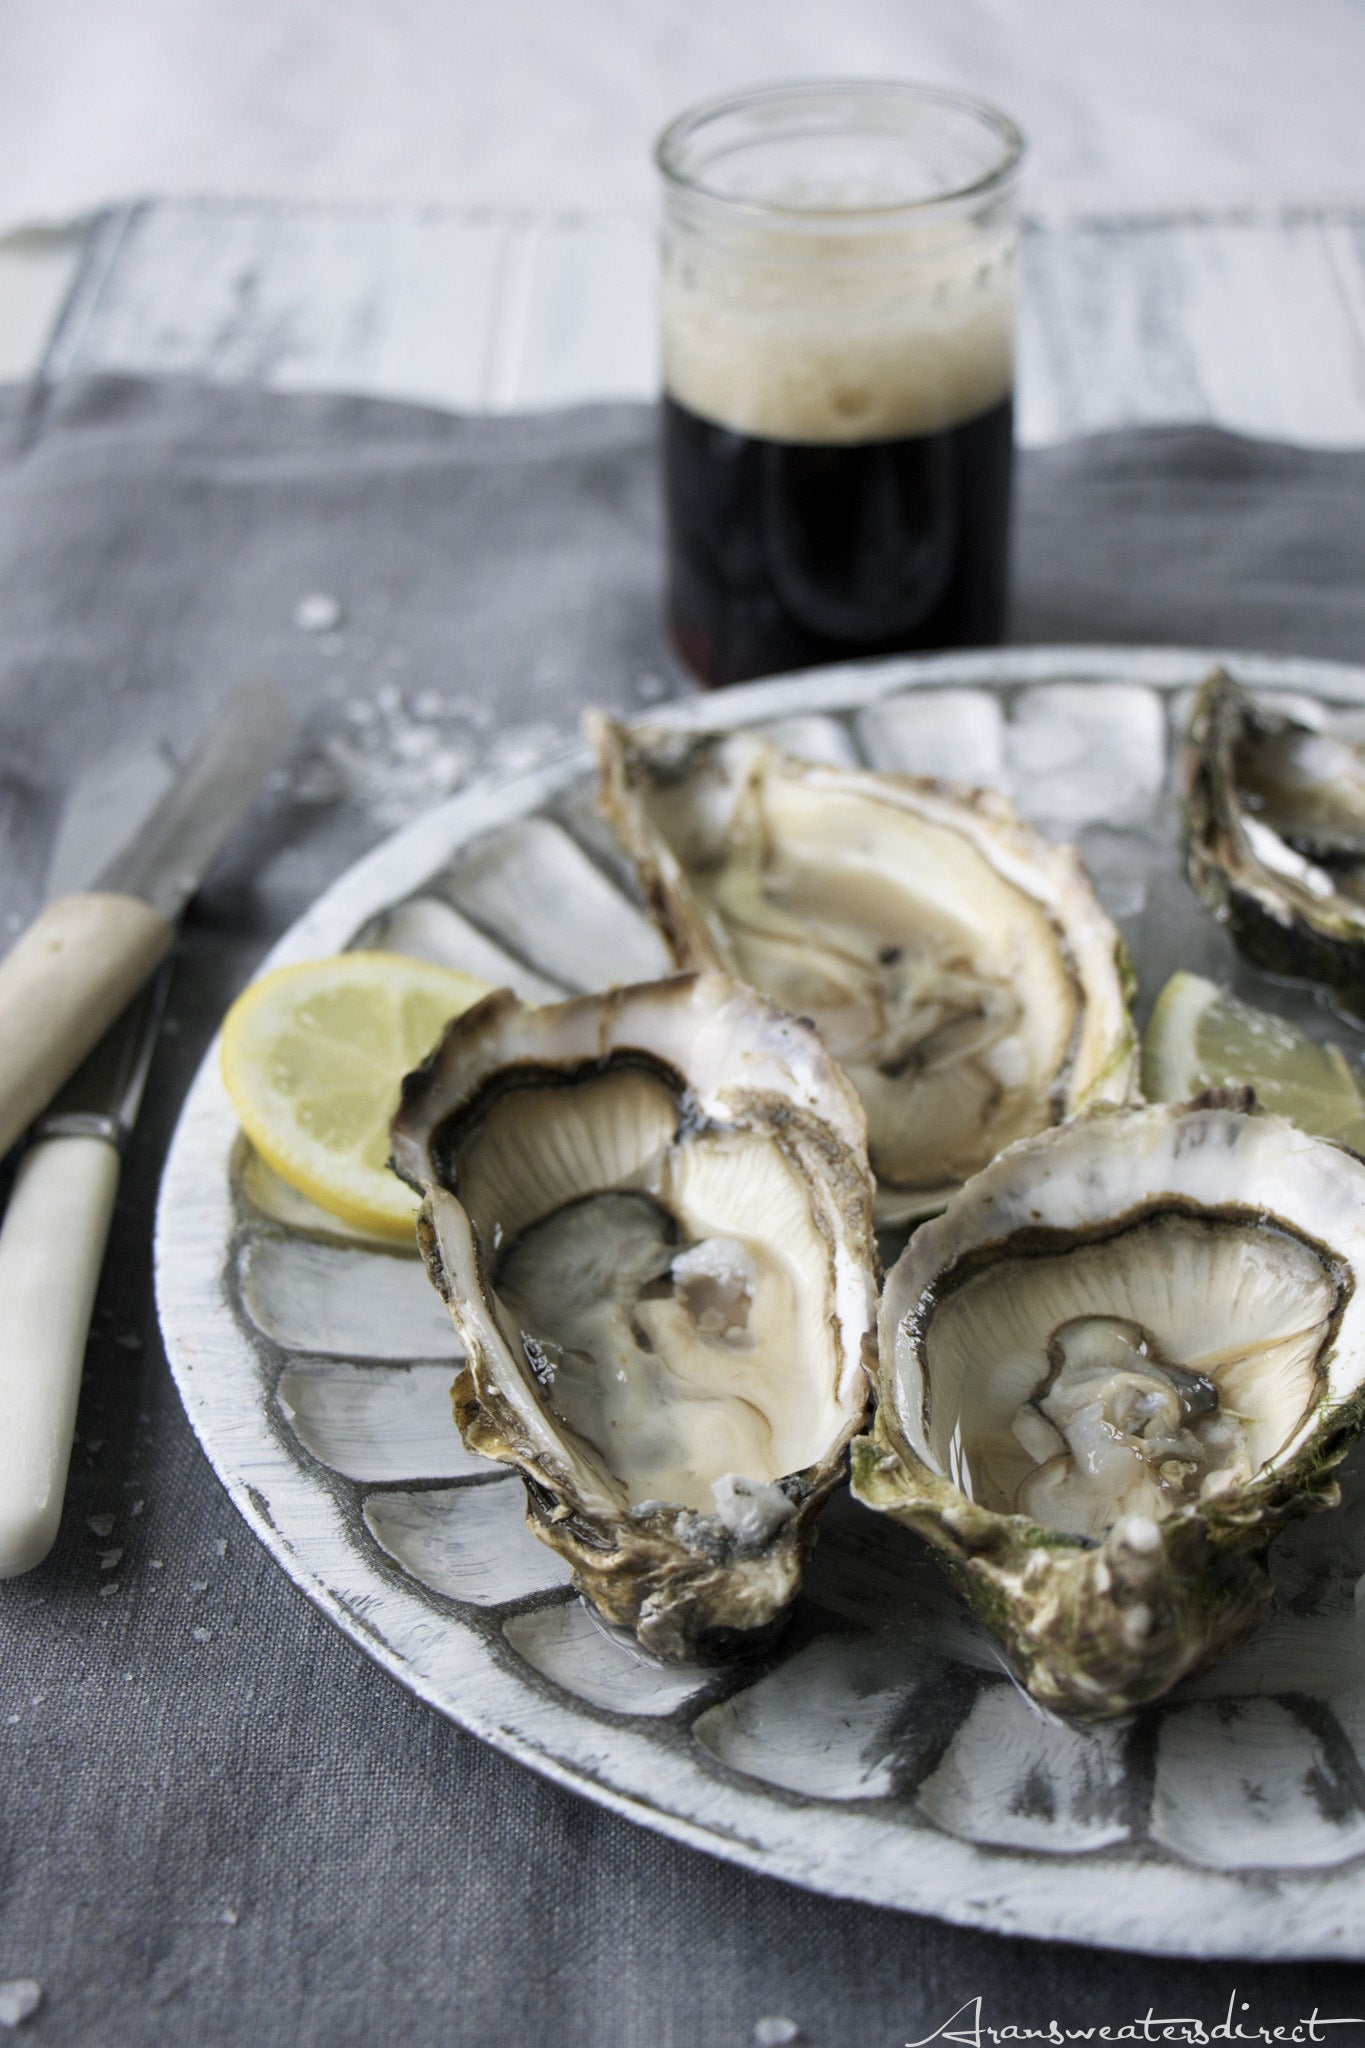 Oysters & Stout - a truly Irish recipe #Oyster #Stout #Recipe